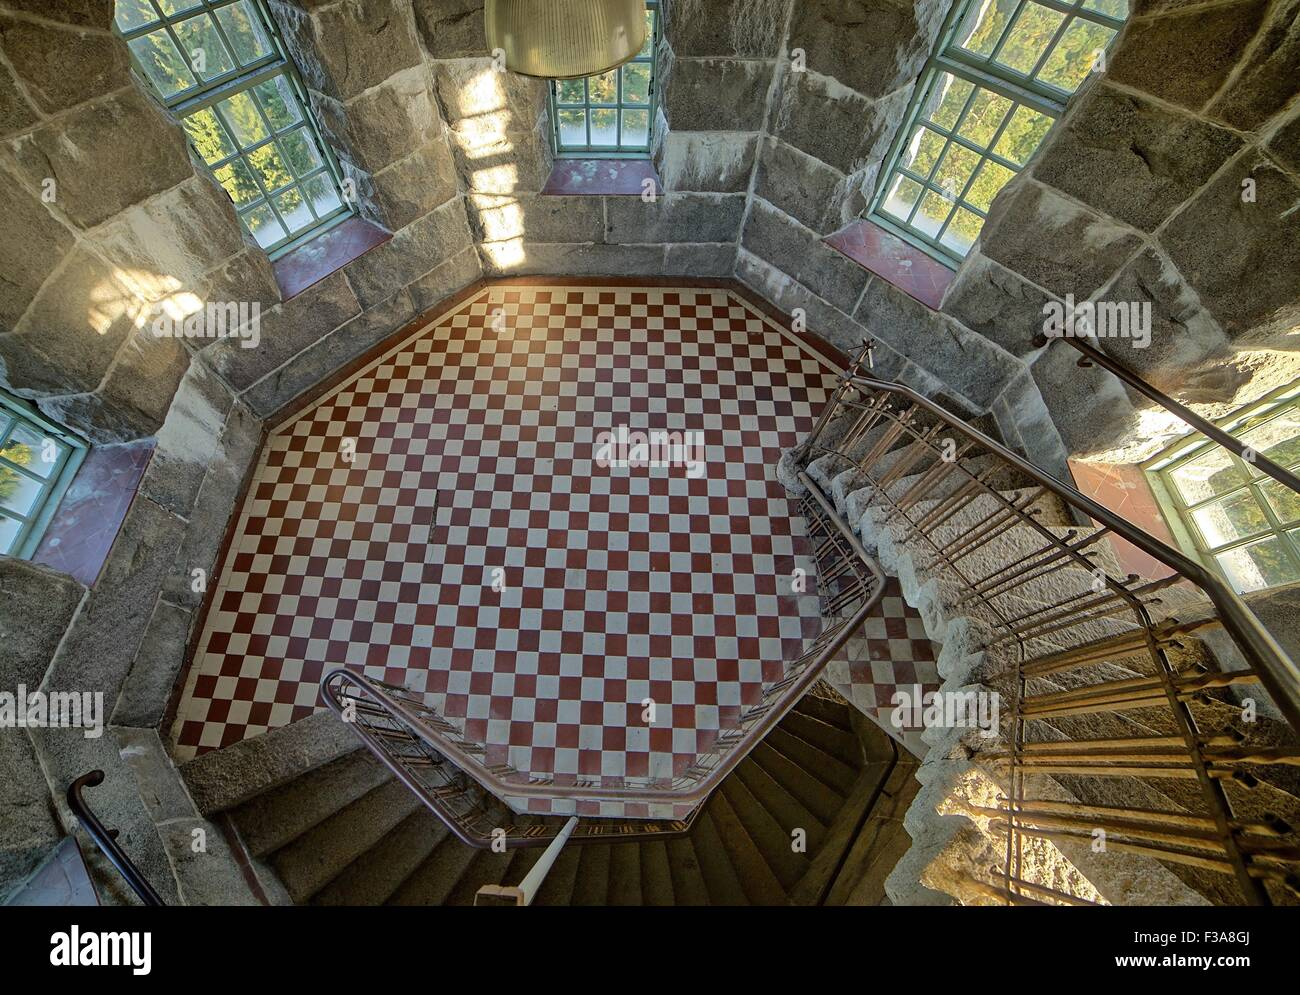 Charming Stone Tower Interior With Curved Staircase, HDR Image.